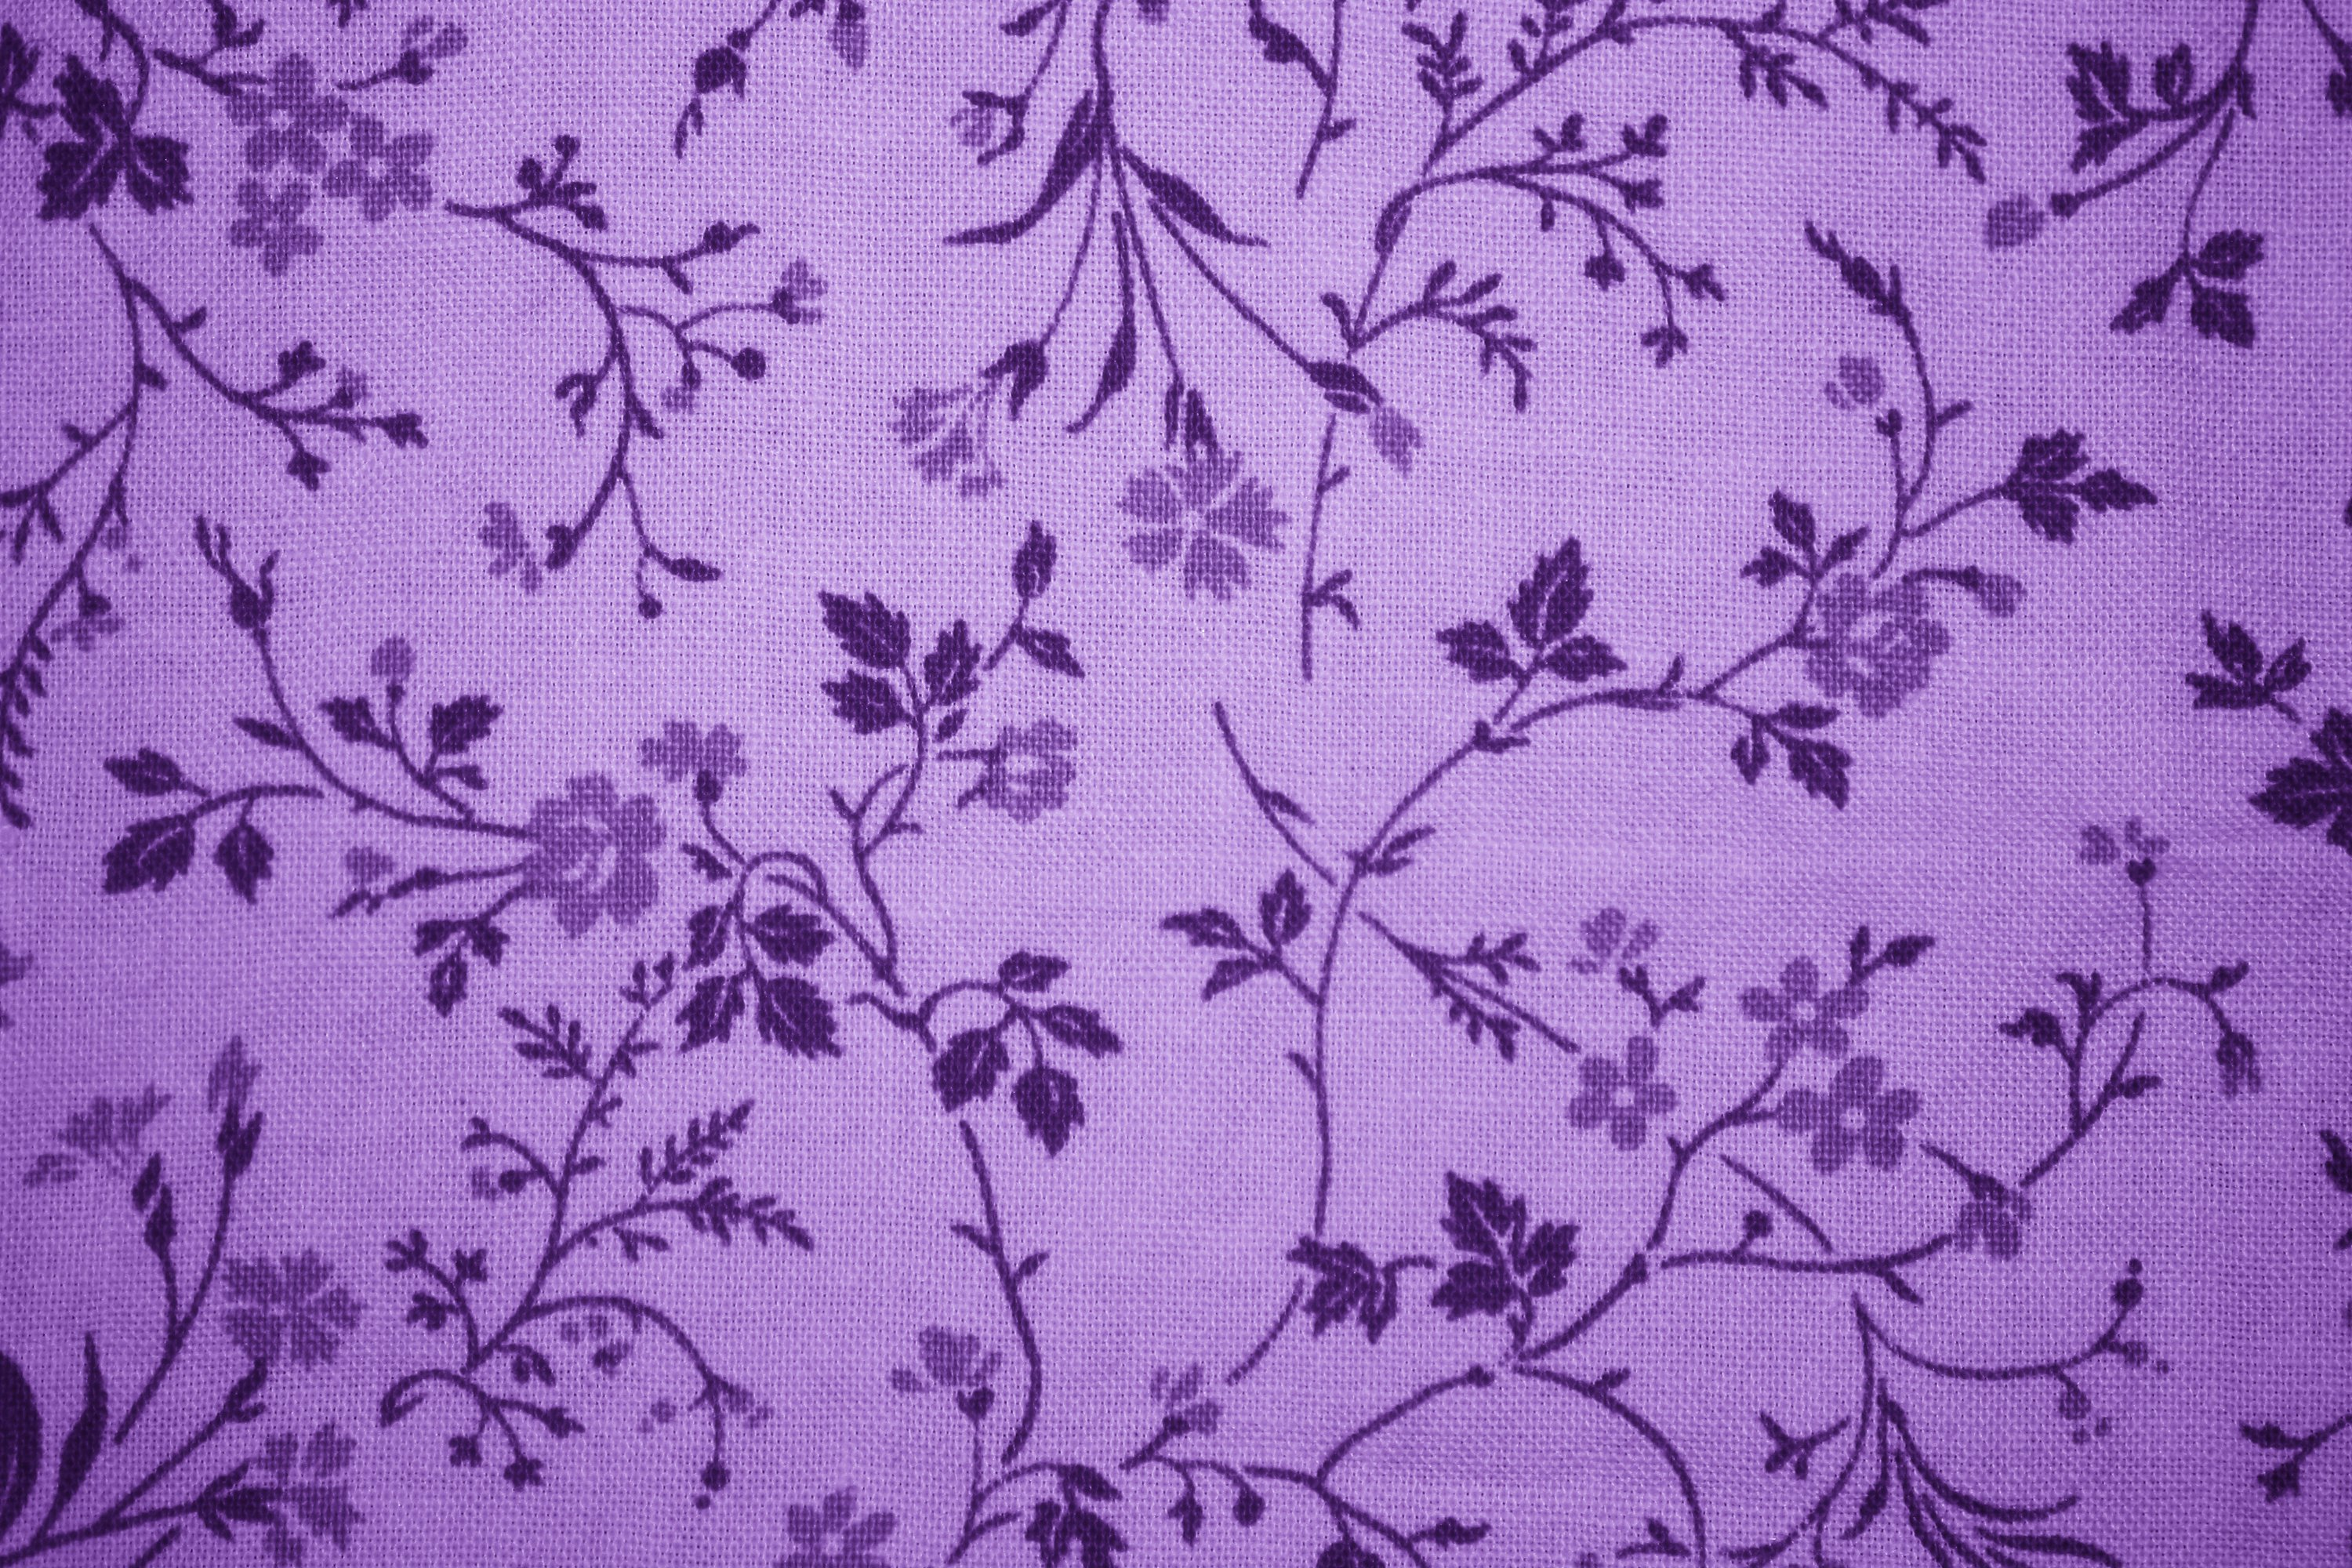 Purple floral wallpaper 2017 grasscloth wallpaper for Patterned material fabric